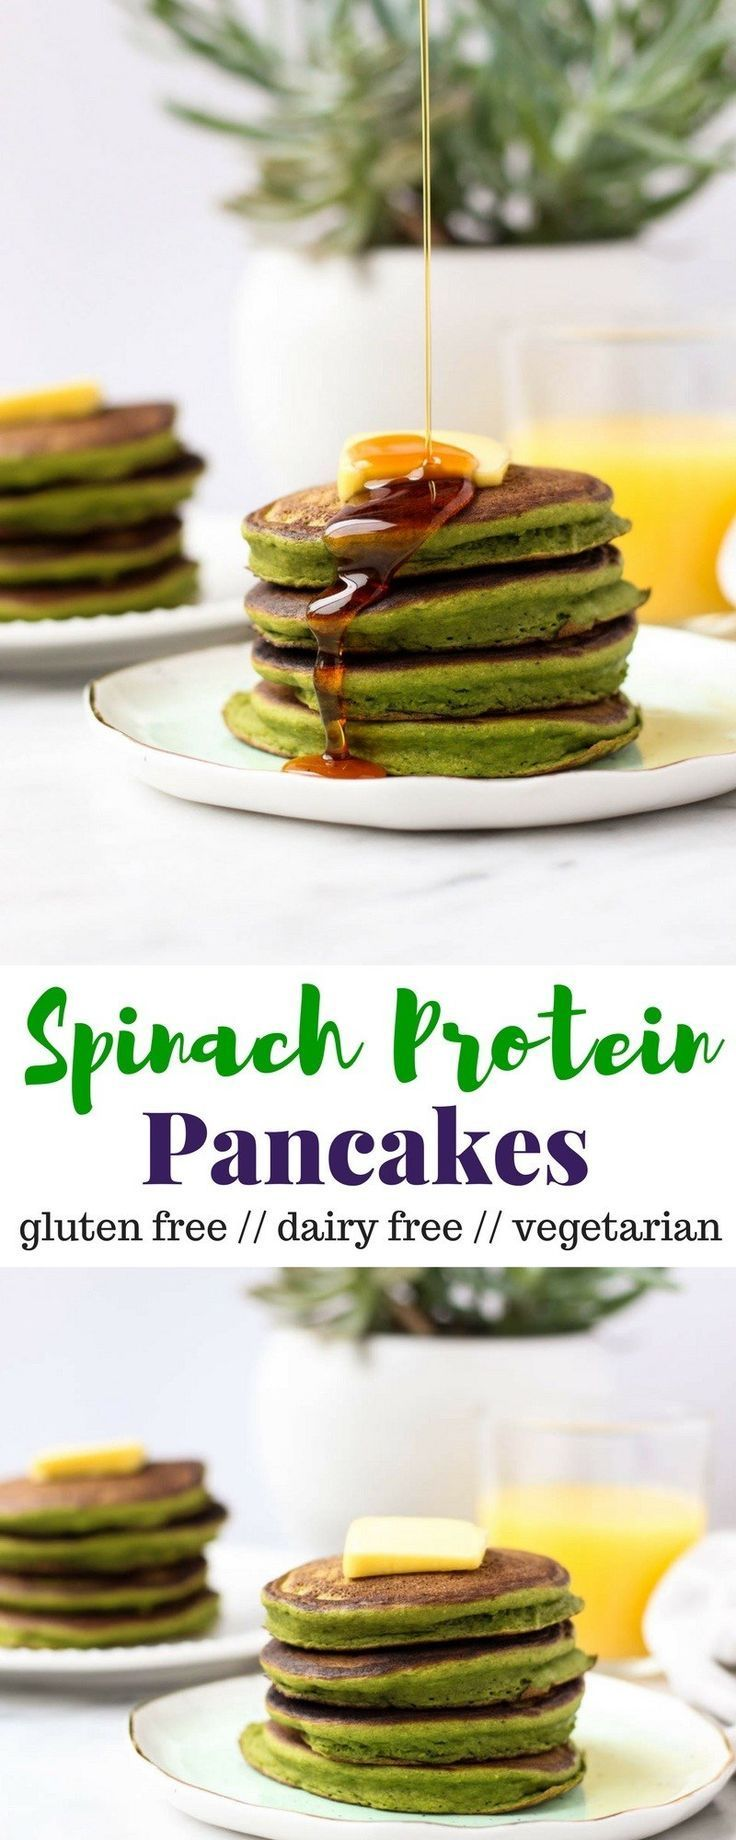 Start your day with protein and veggies in these Spinach Protein Pancakes! A fun way to add some greens while keeping them gluten free, dairy free, and vegetarian - Eat the Gains